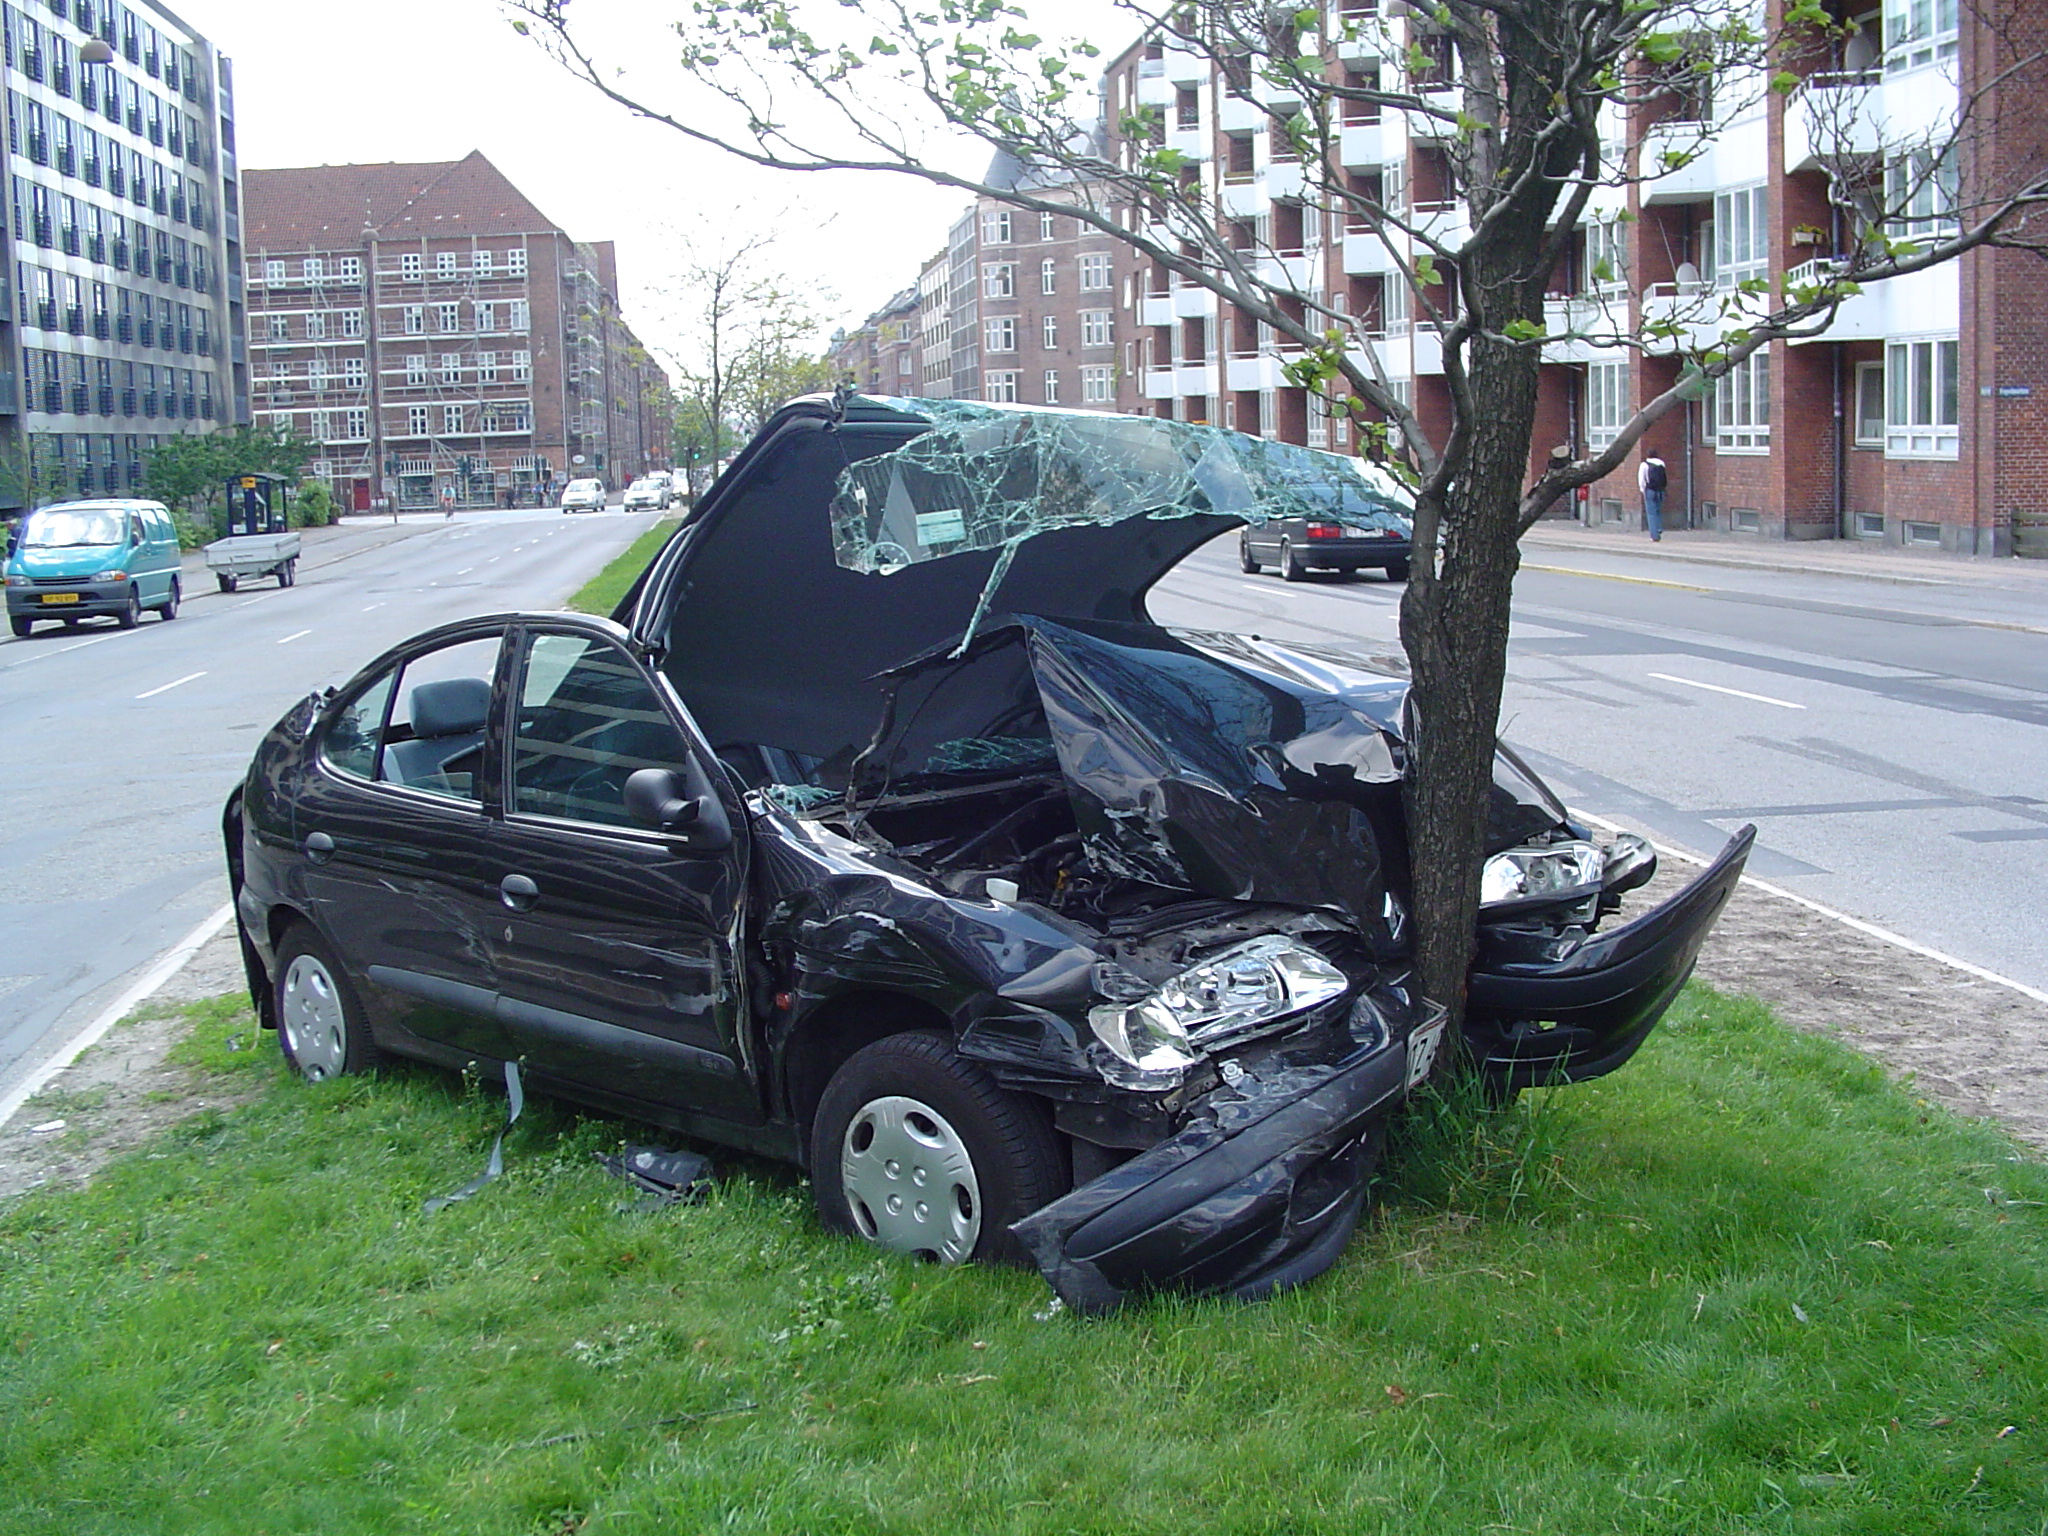 a car wreck on jagtvej a road in copenhagen denmark may 24